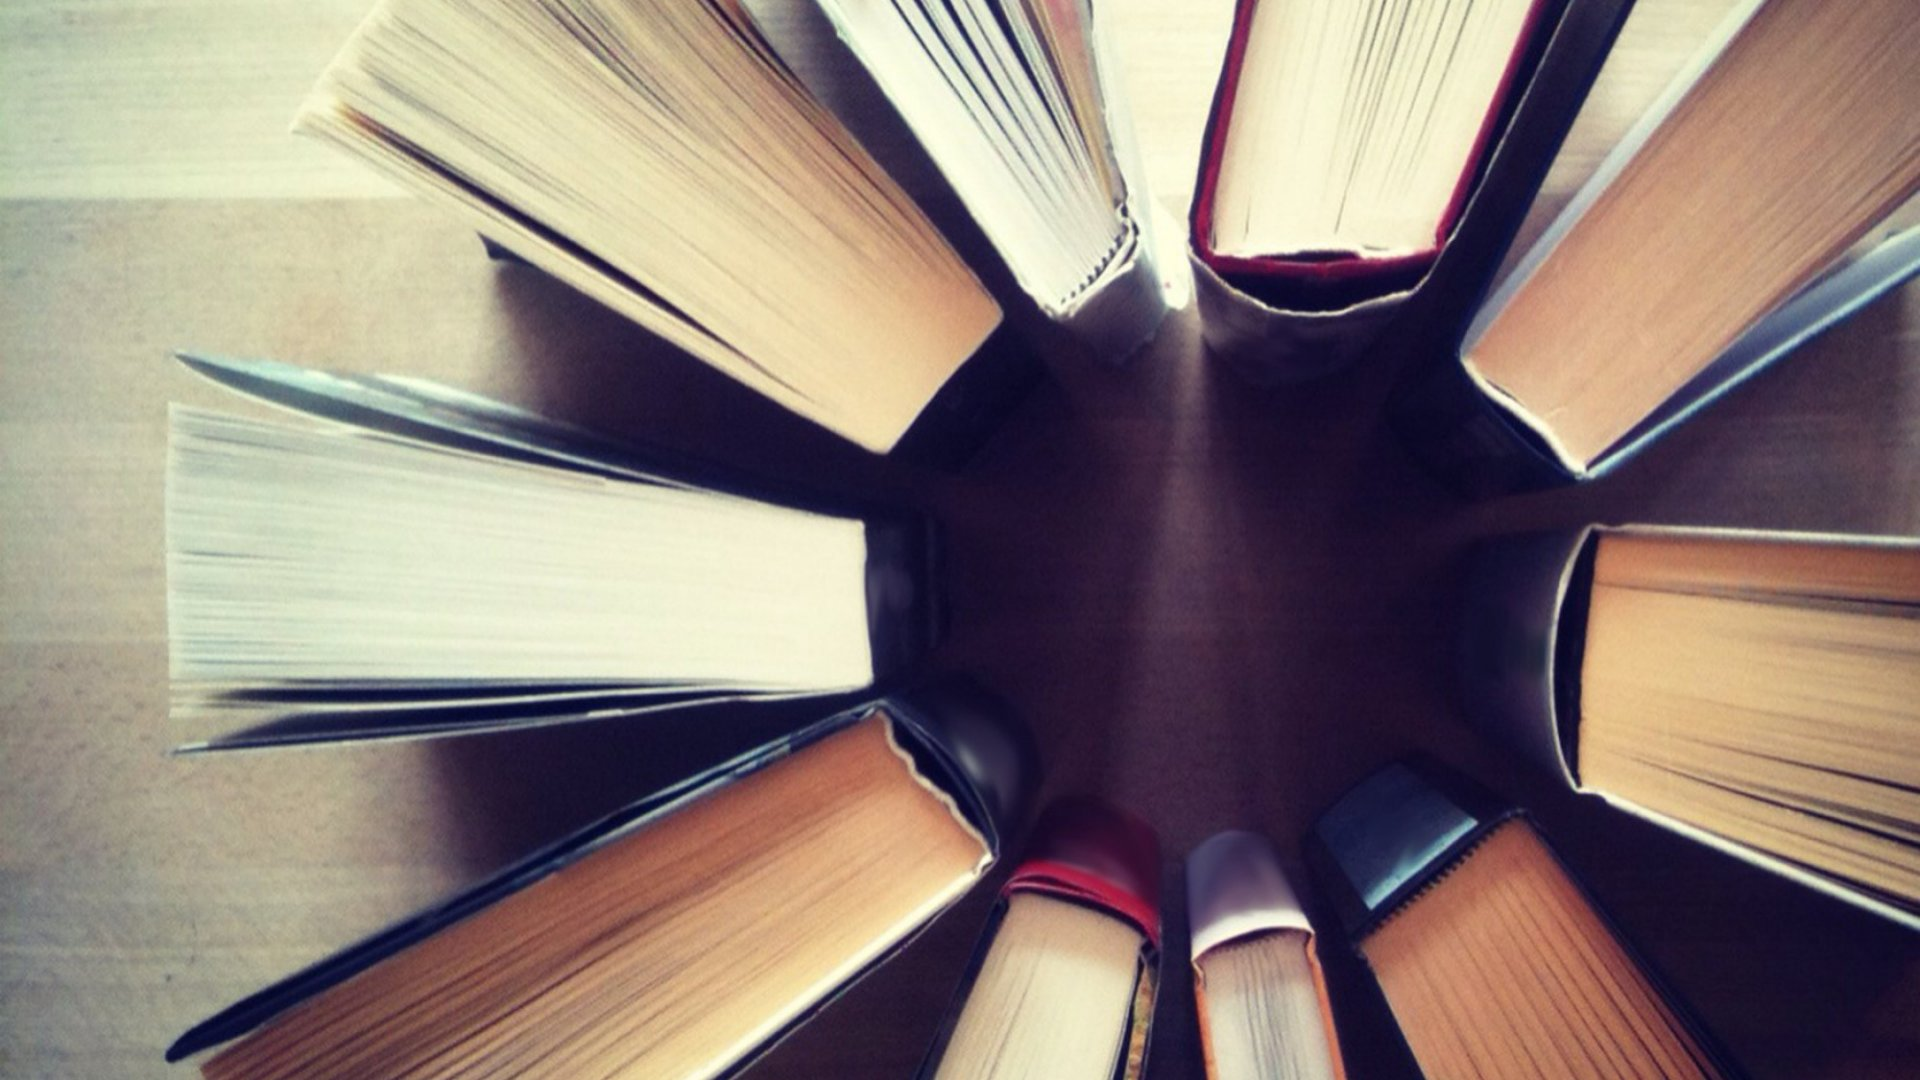 10 Powerful Books That Will Change How You See the World